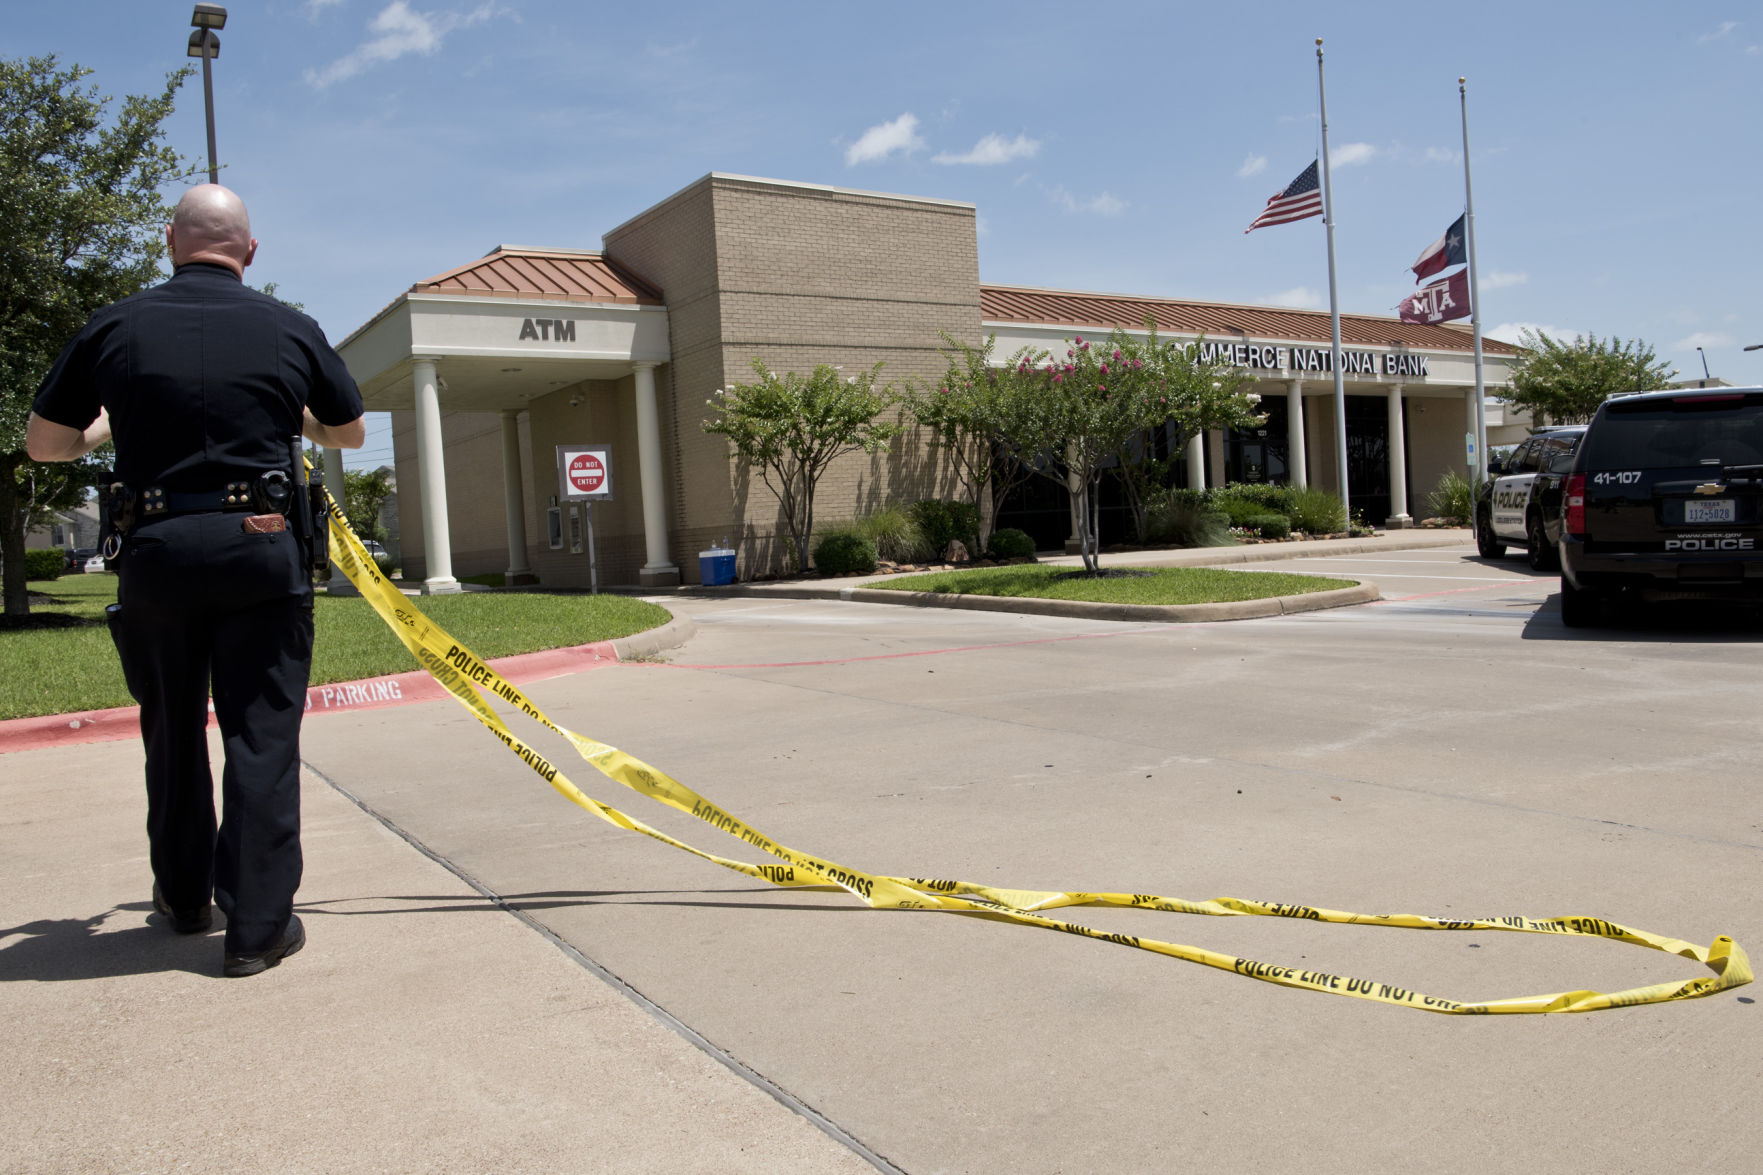 Commerce National Bank Robbery In College Station, Texas | Gallery |  Theeagle.com